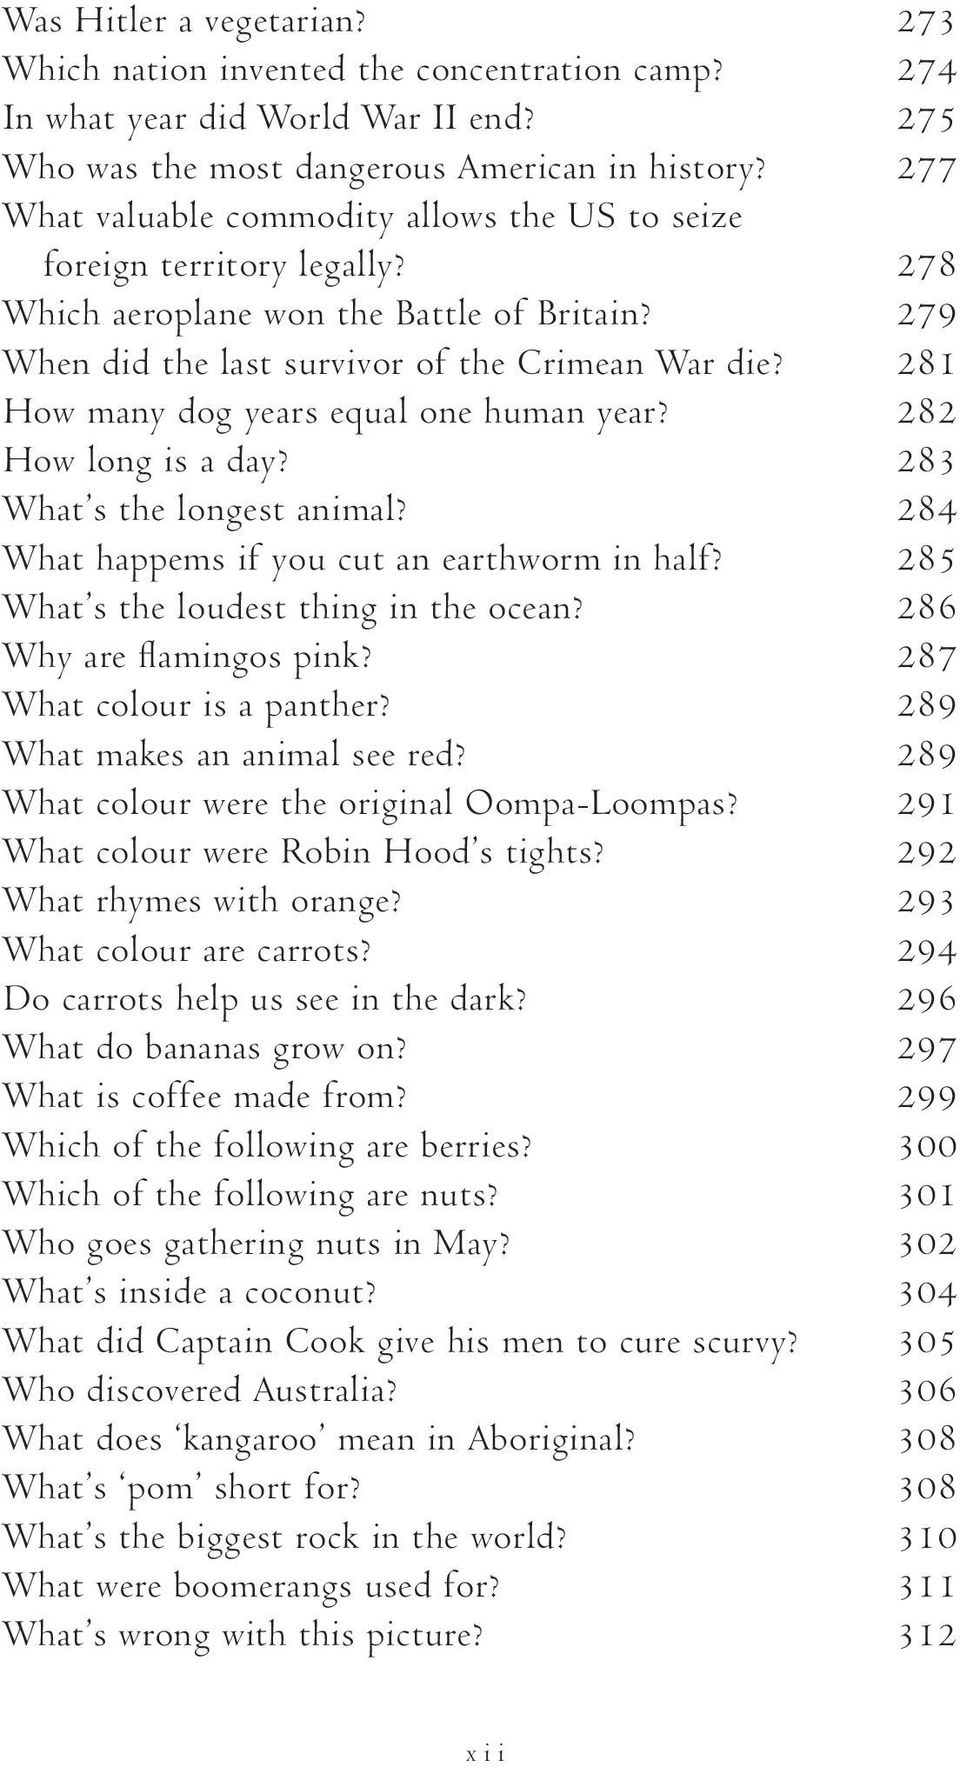 281 How many dog years equal one human year? 282 How long is a day? 283 What s the longest animal? 284 What happems if you cut an earthworm in half? 285 What s the loudest thing in the ocean?